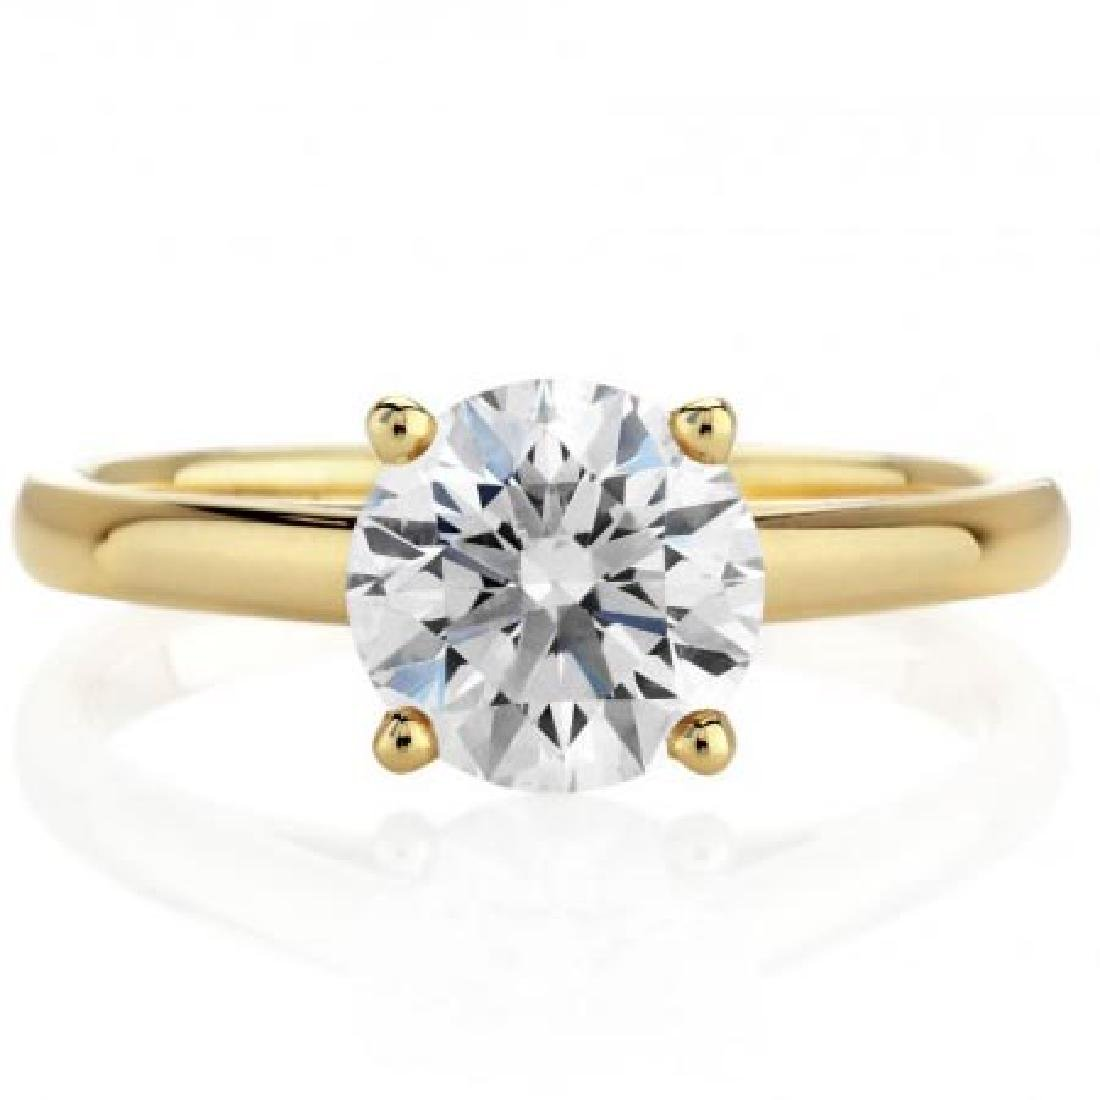 CERTIFIED 0.92 CTW ROUND E/VVS2 SOLITAIRE RING IN 14K Y